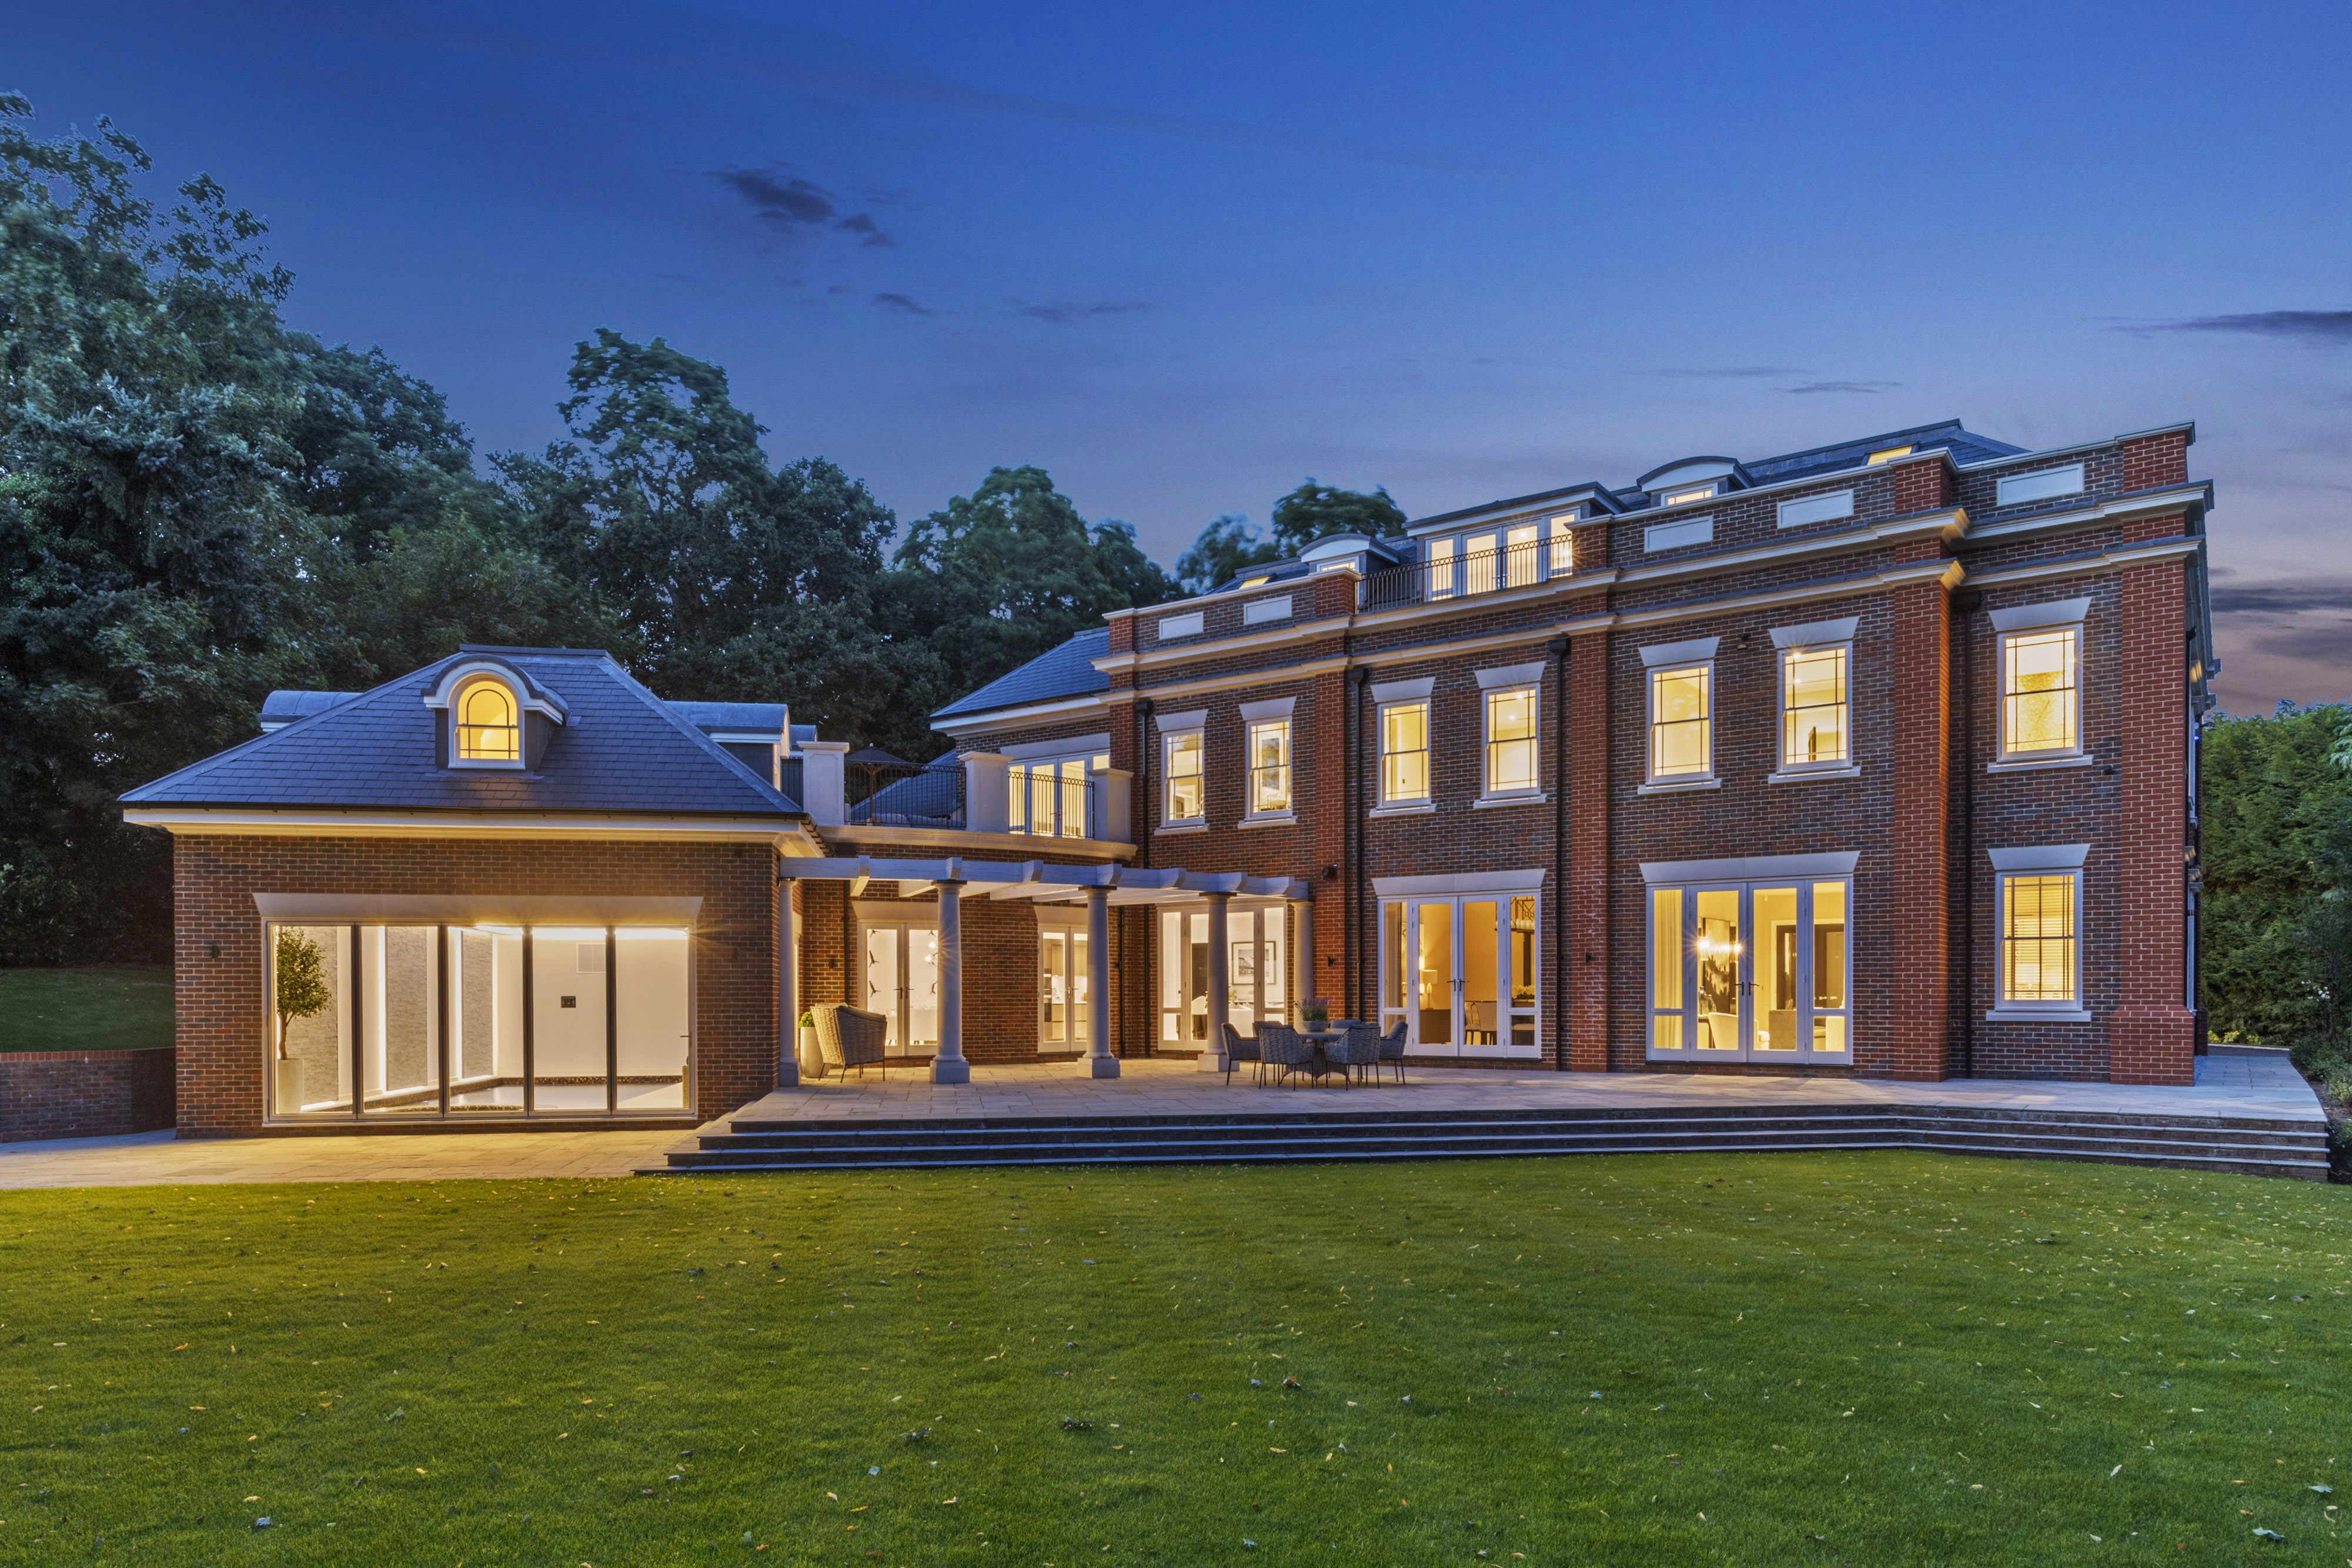 Rear elevation of red brick mansion at dusk